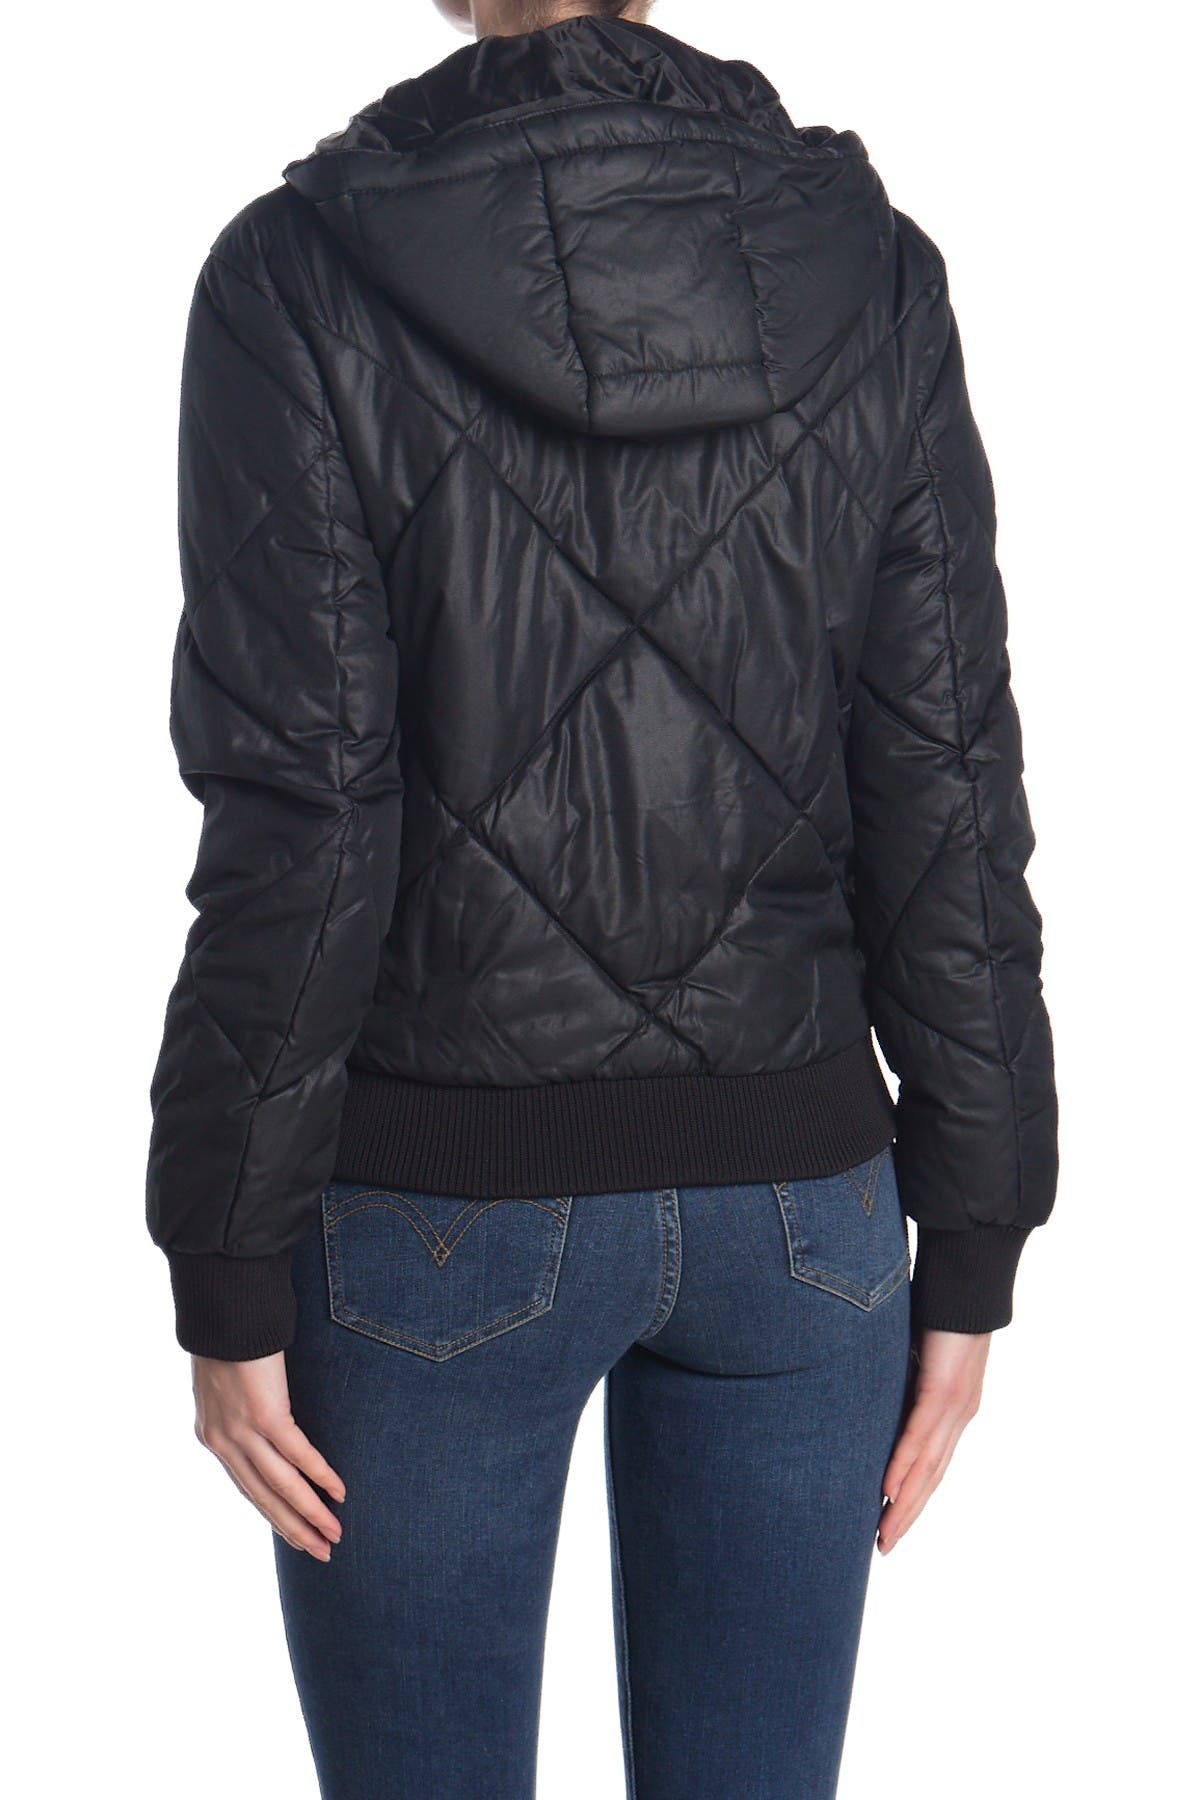 BNCI Quilted Hooded Bomber Jacket